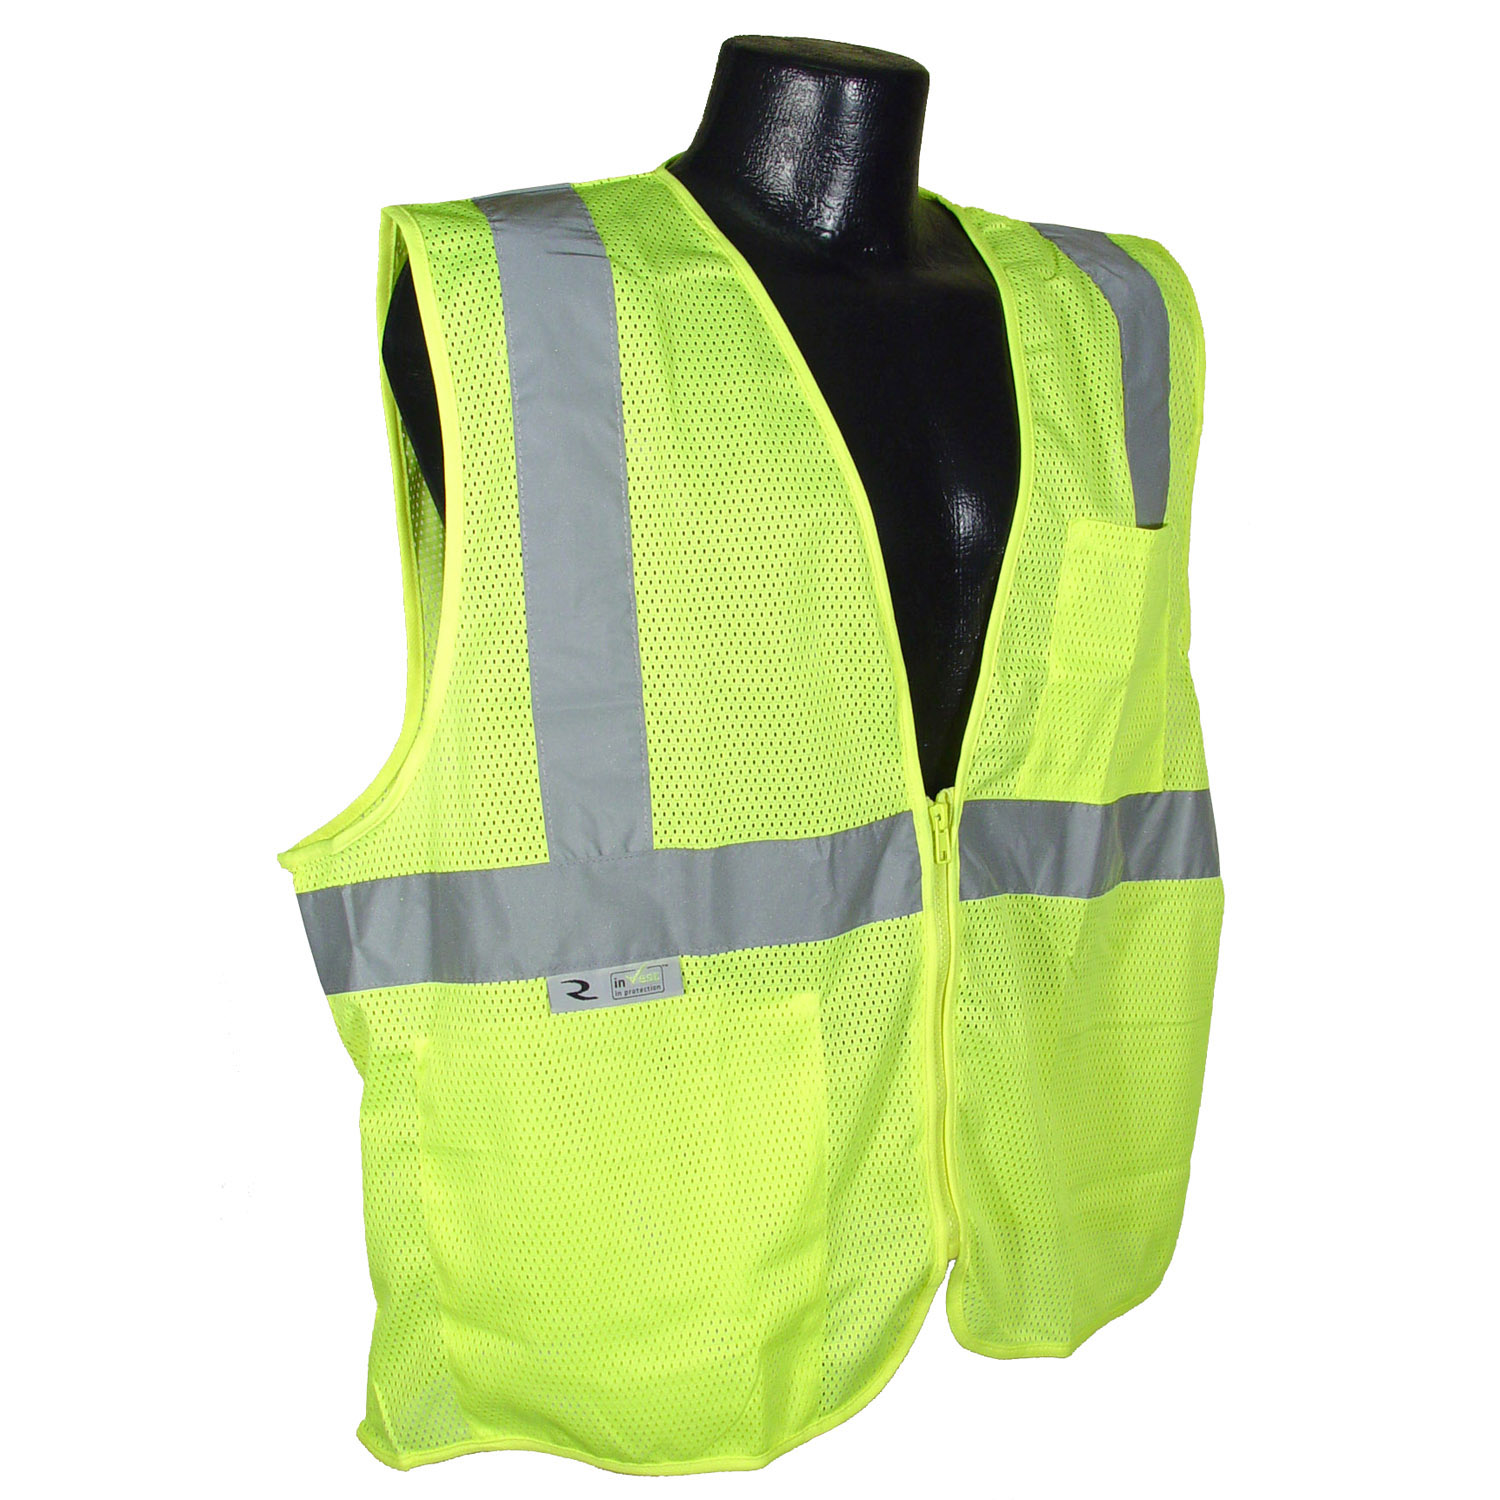 Radians SV25 Economy Class 2 Self Extinguishing Safety Vest with Zipper